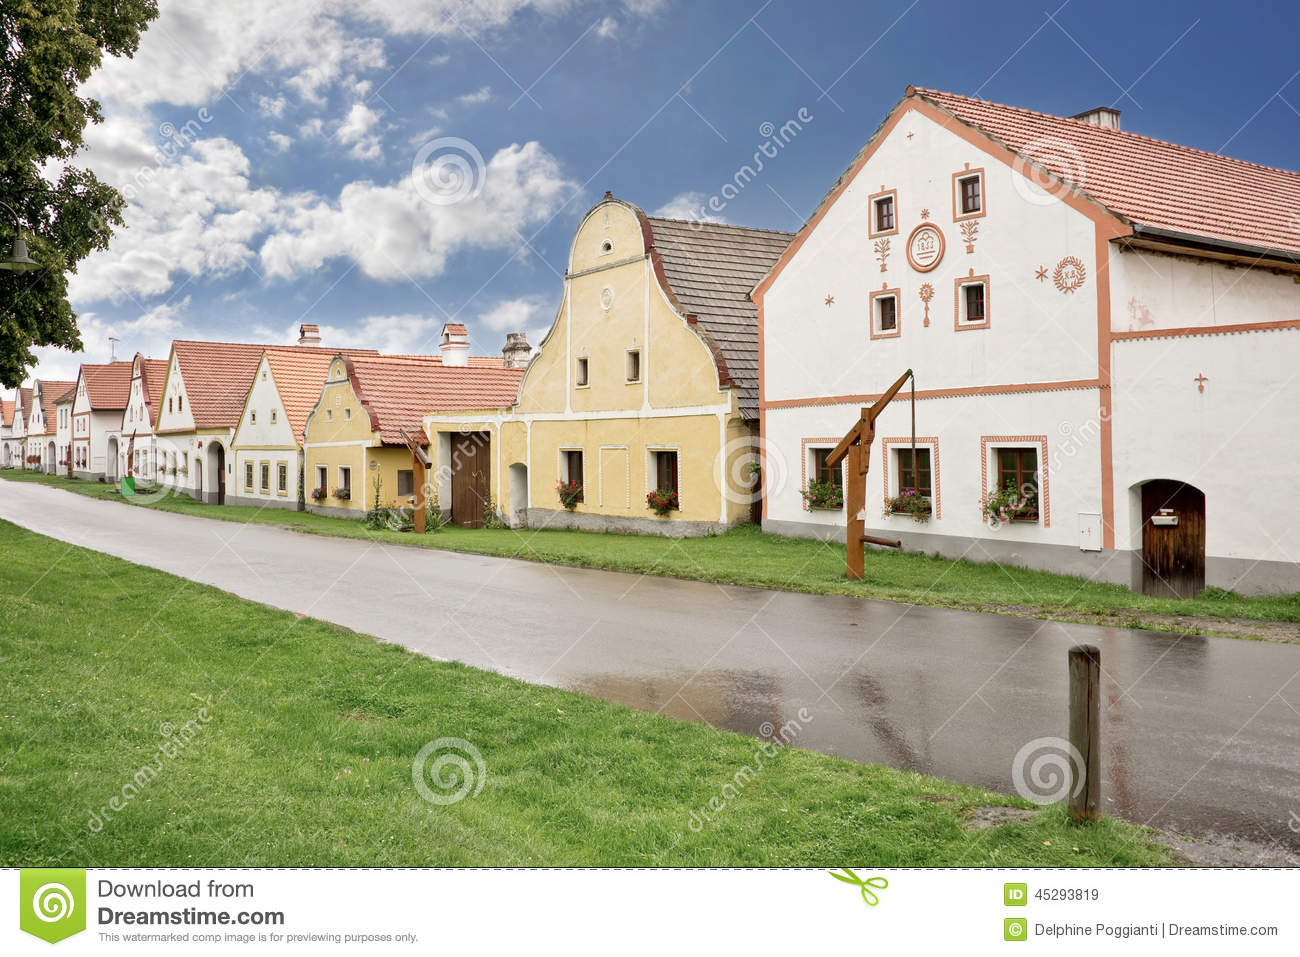 Village of Holasovice, Bohemia